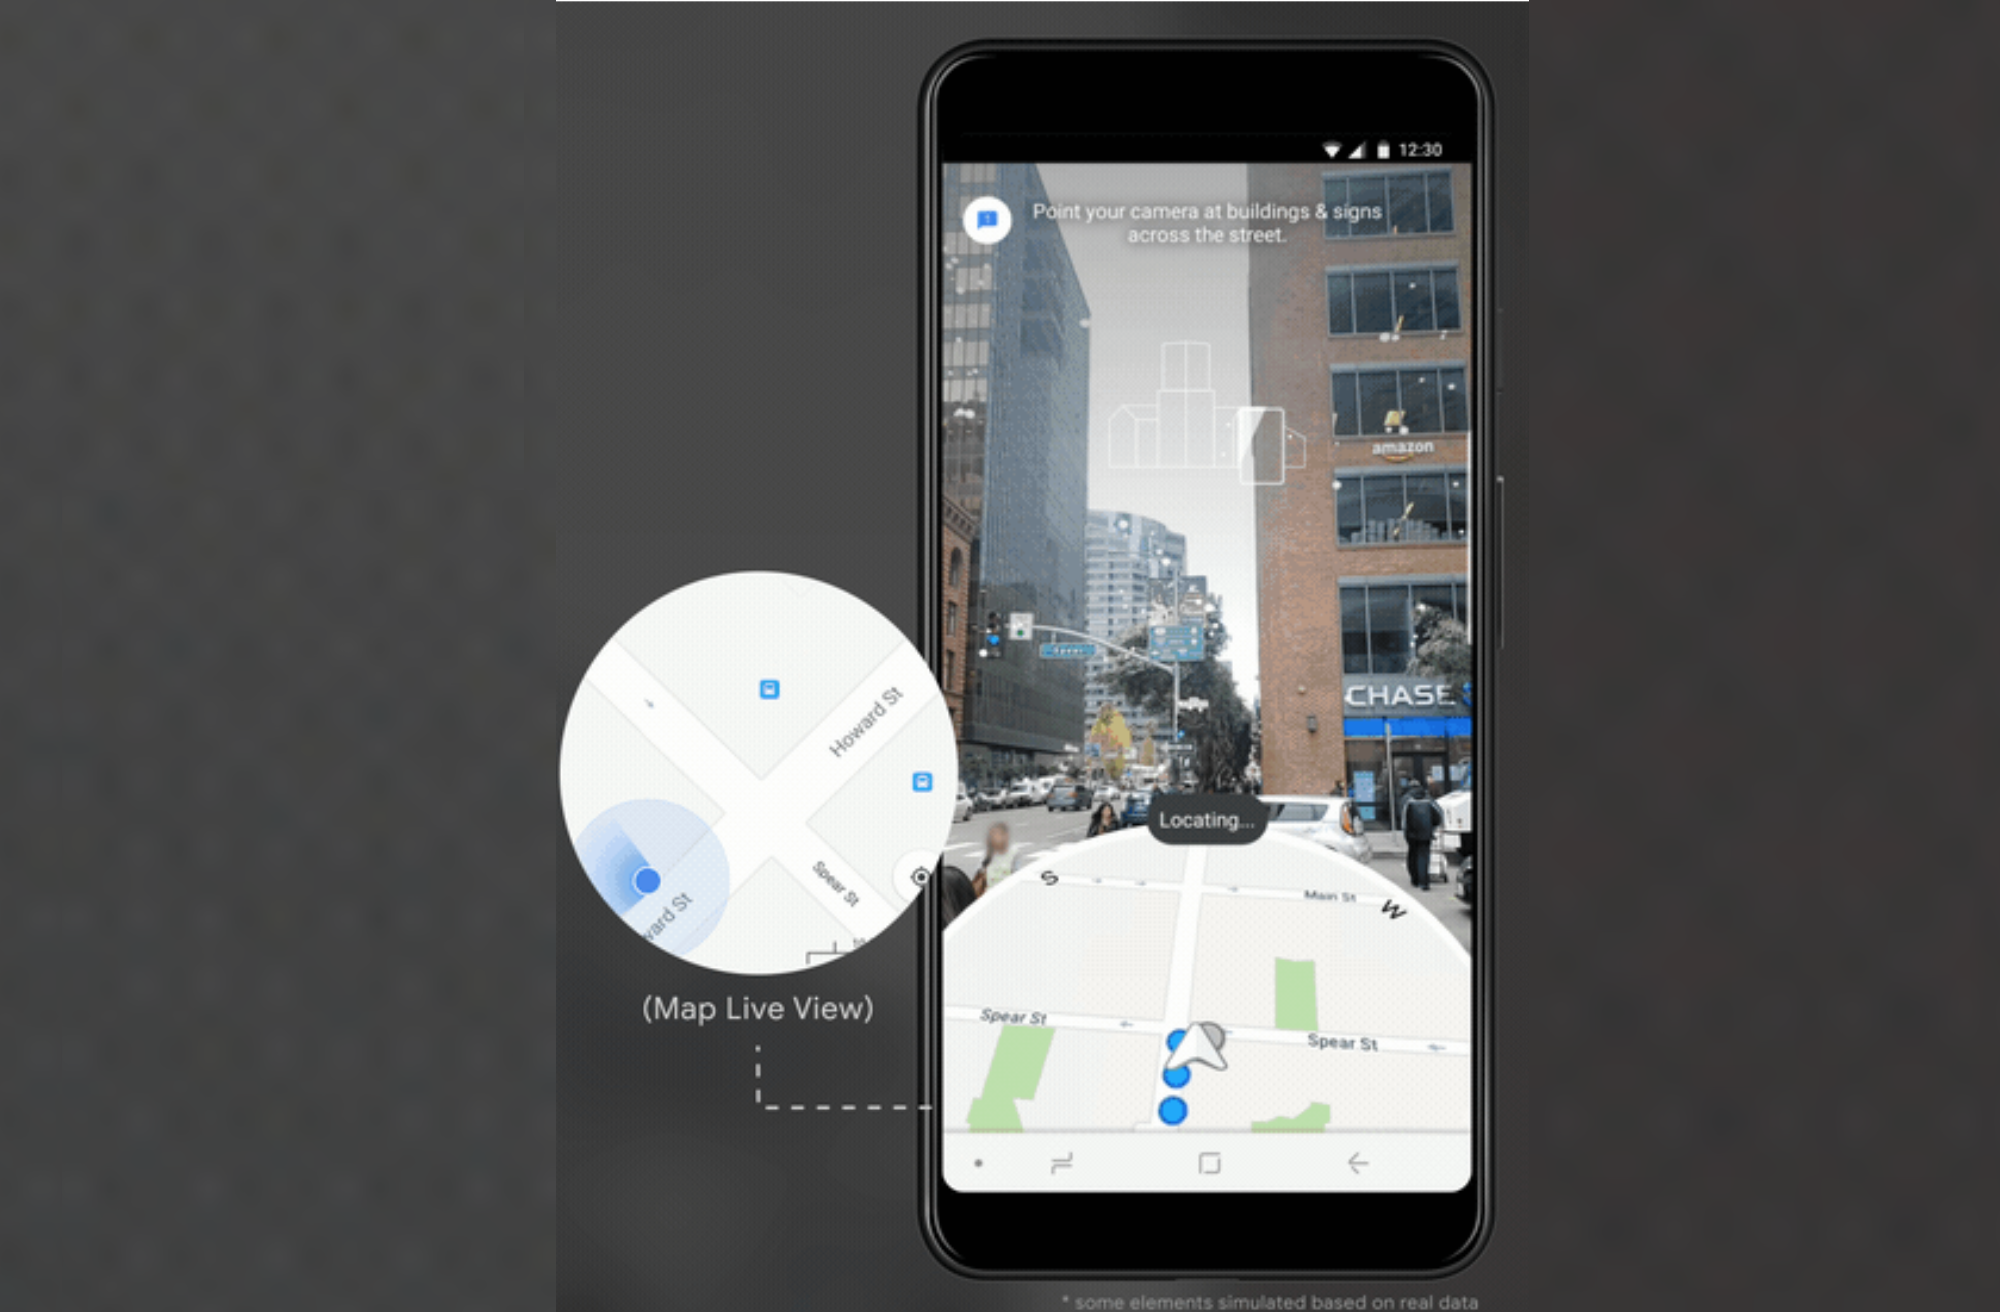 Google Maps will use your camera to determine your location more